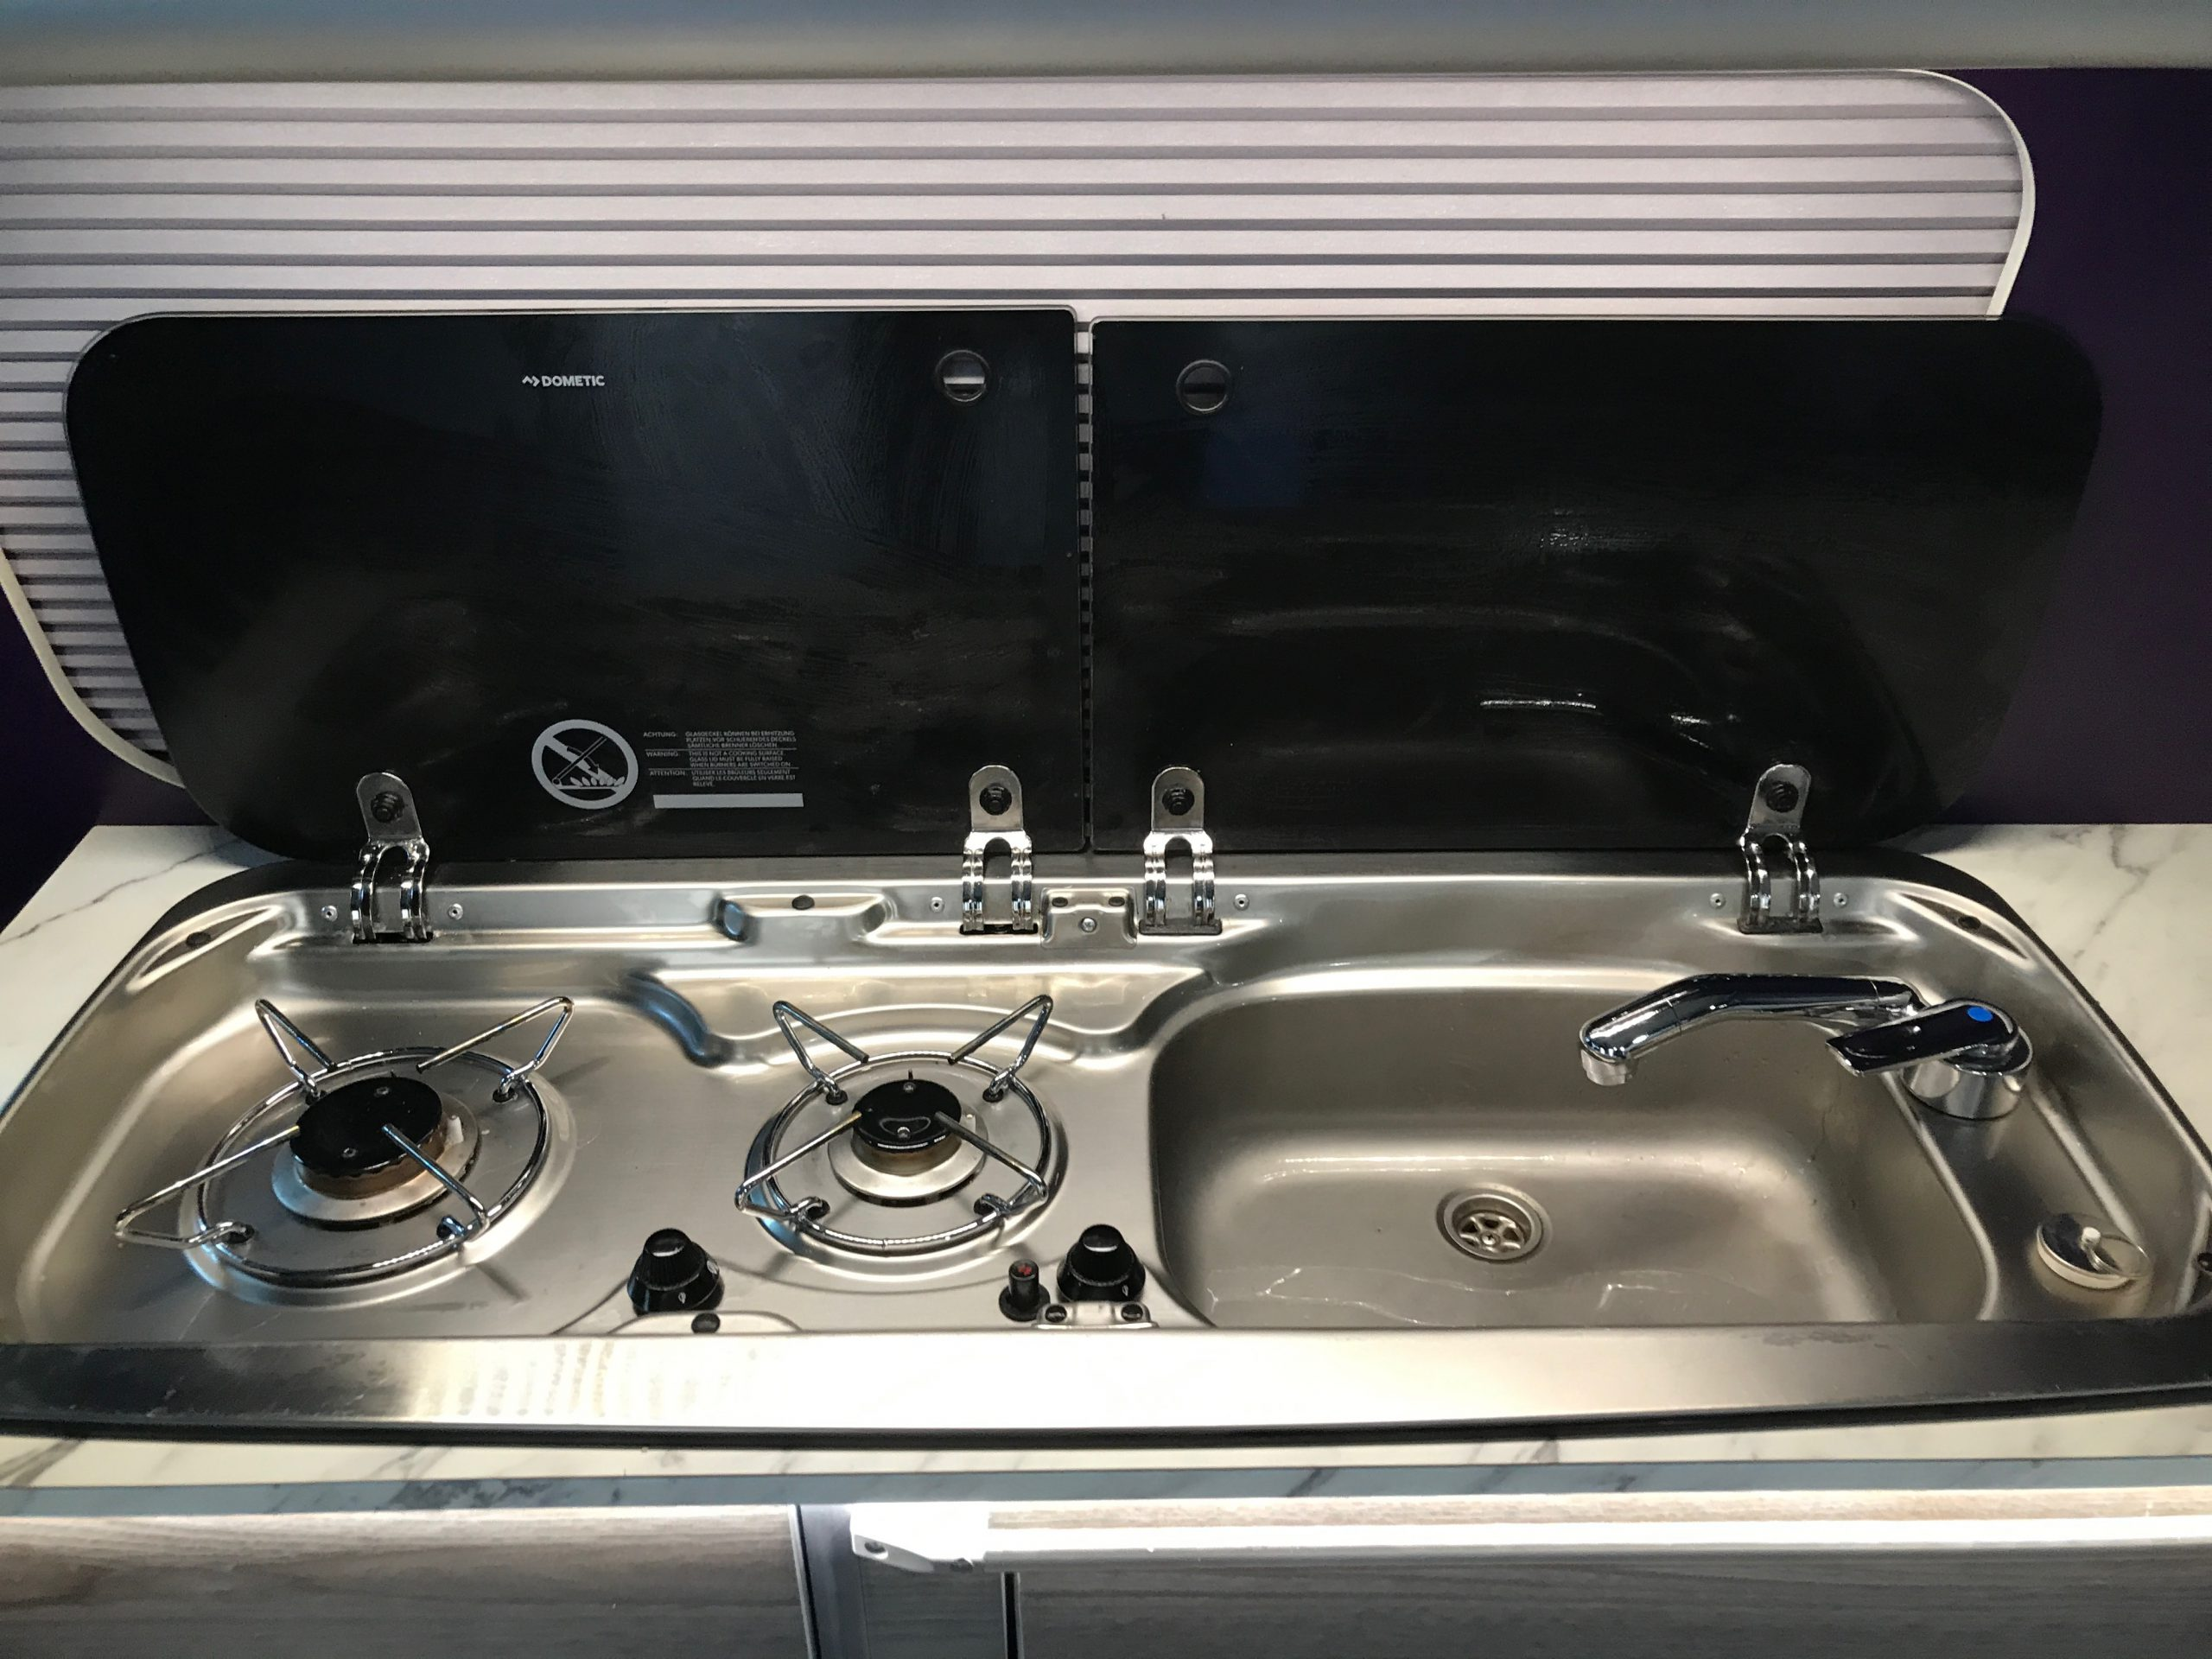 Double gas hob and sink with cold water tap